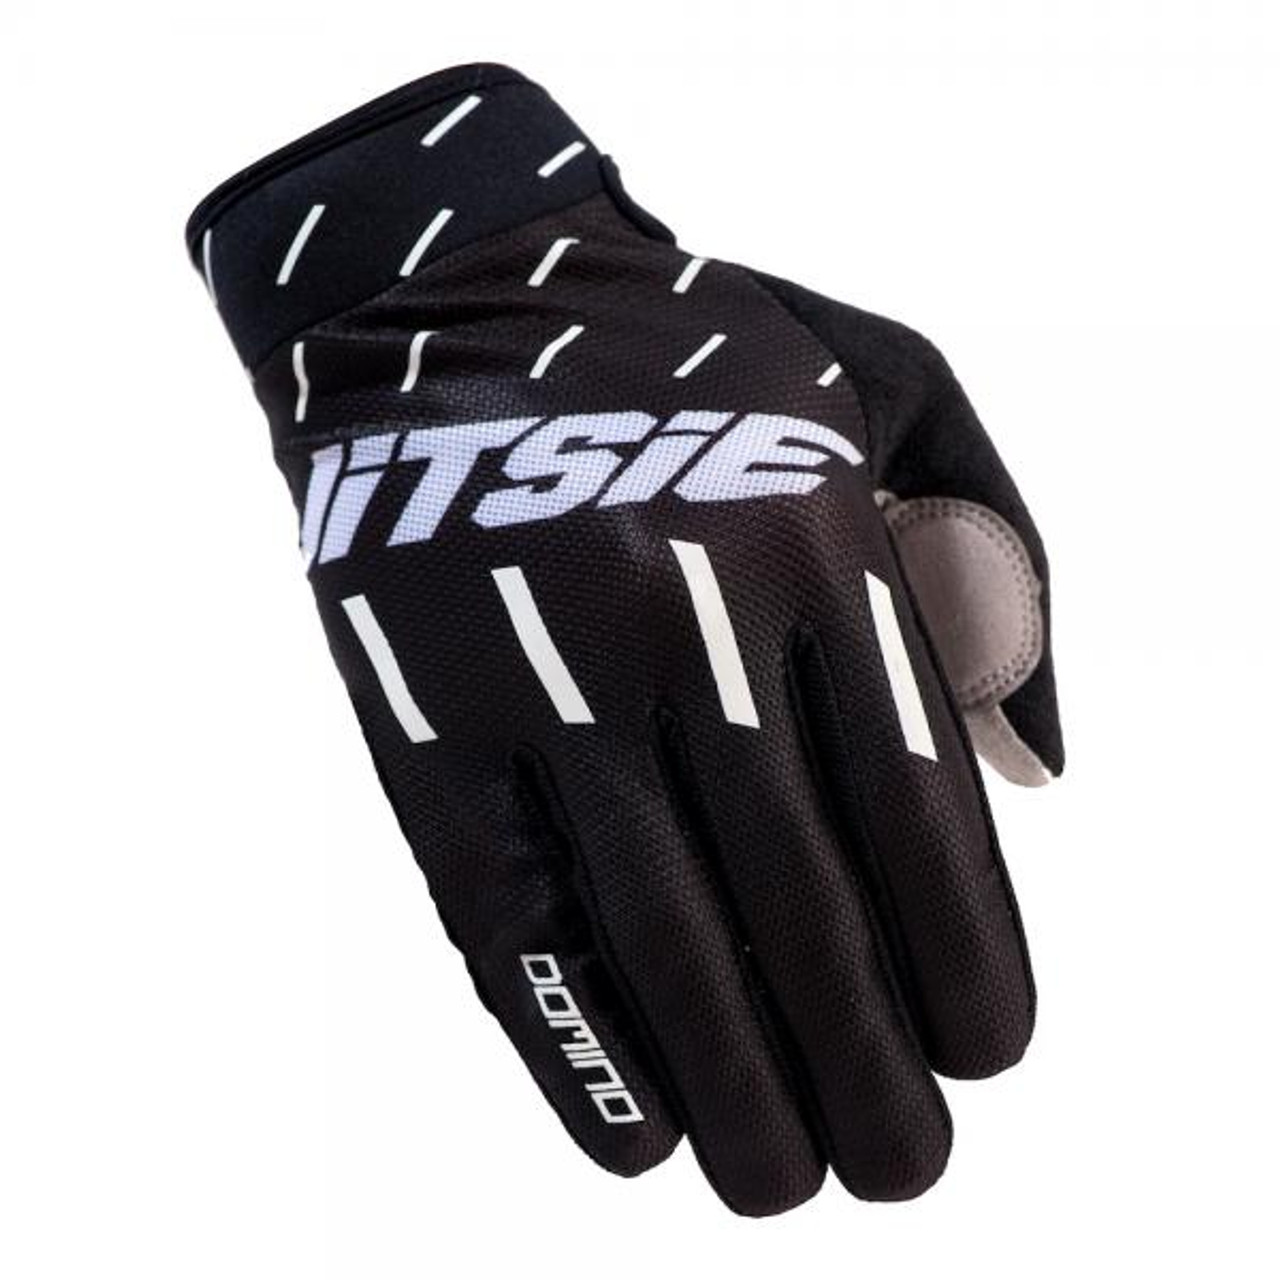 Gloves Domino, black/ white